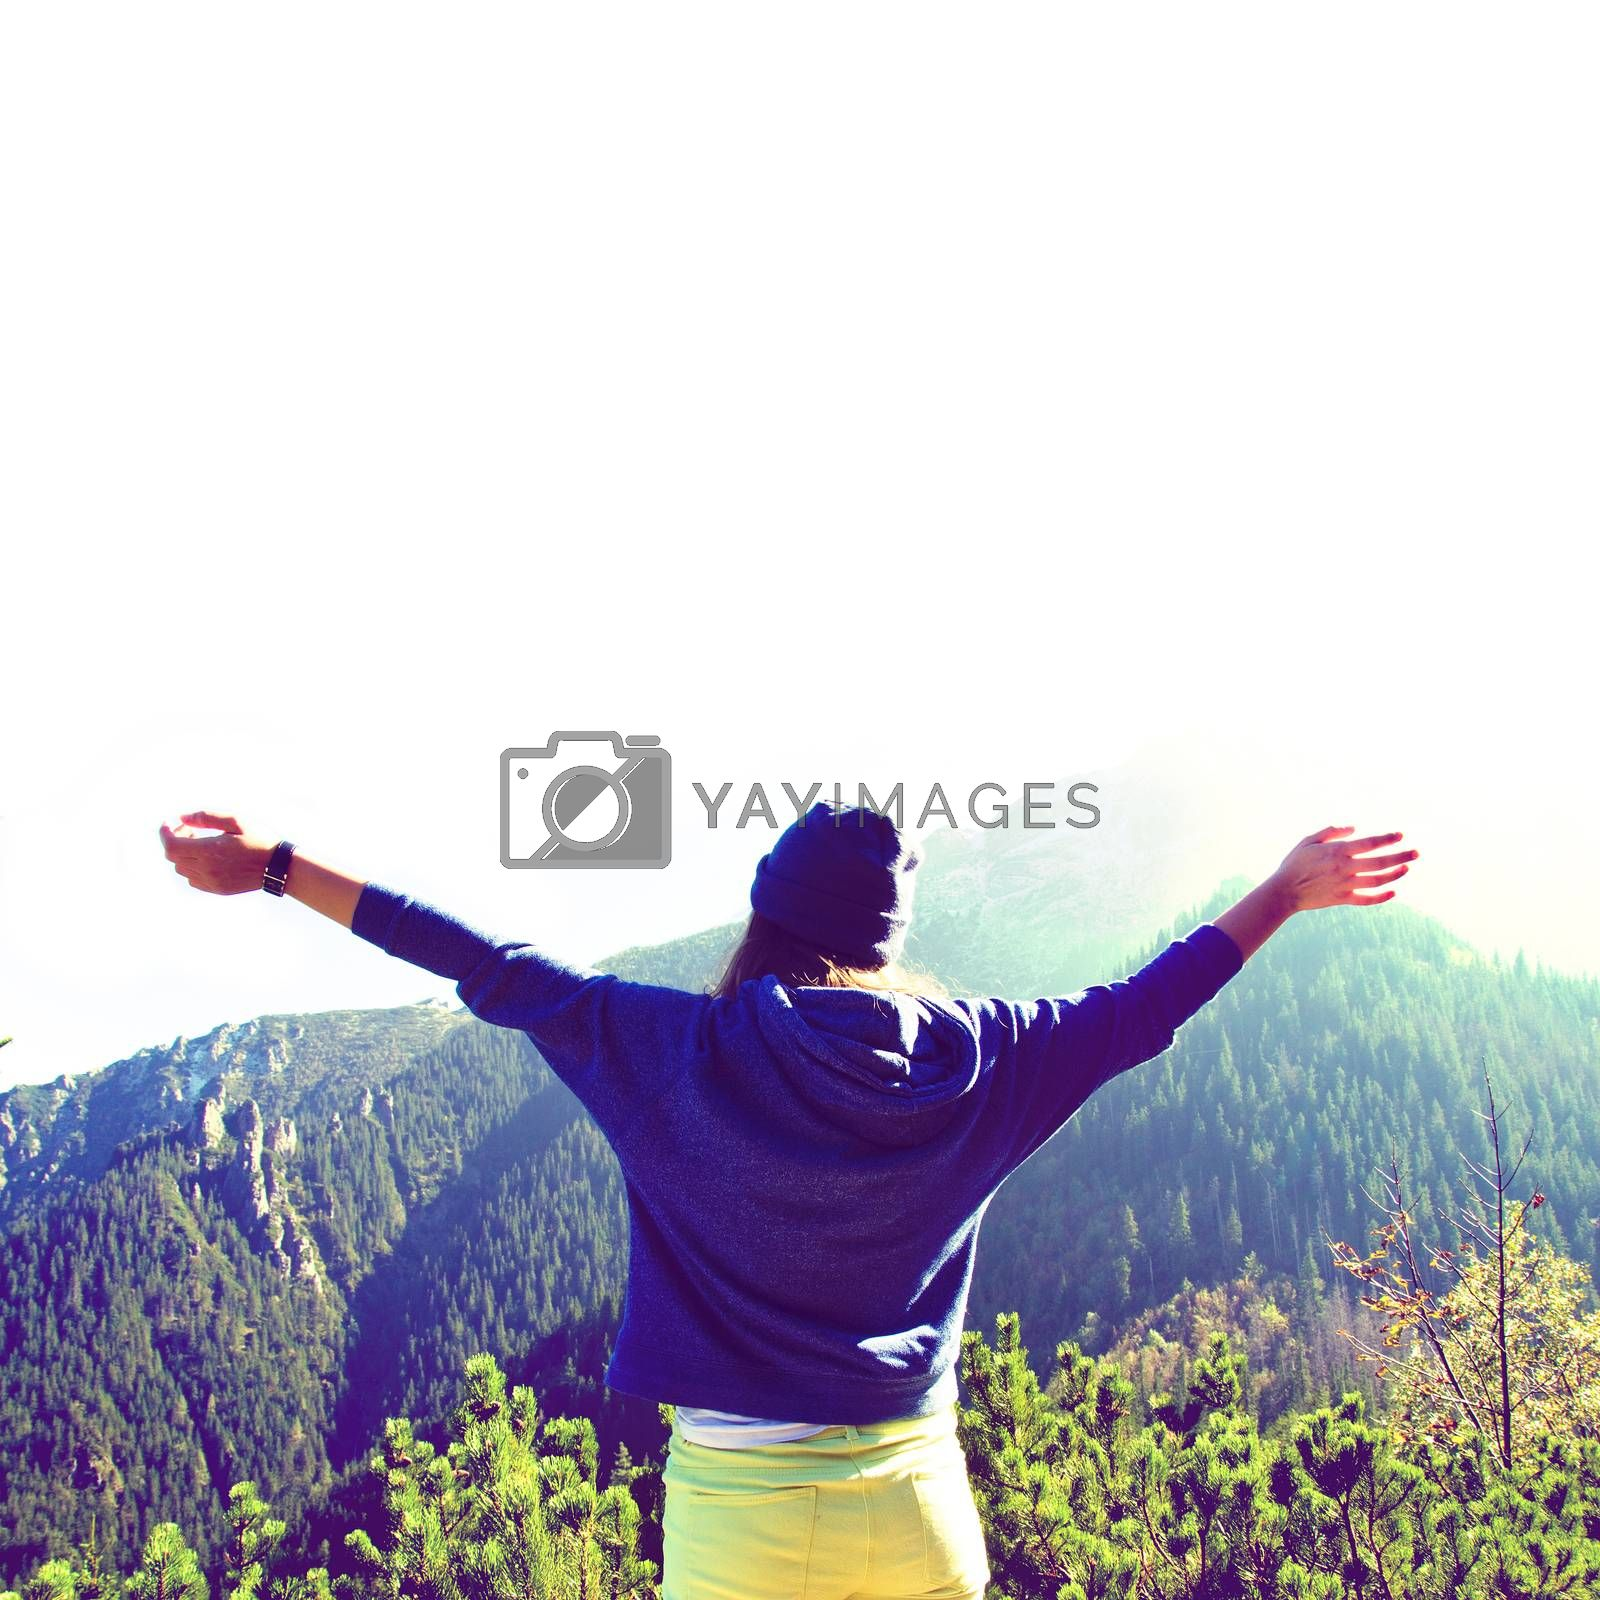 Happy teenage girl feel freedom in mountains scenery. Vintage, retro style.